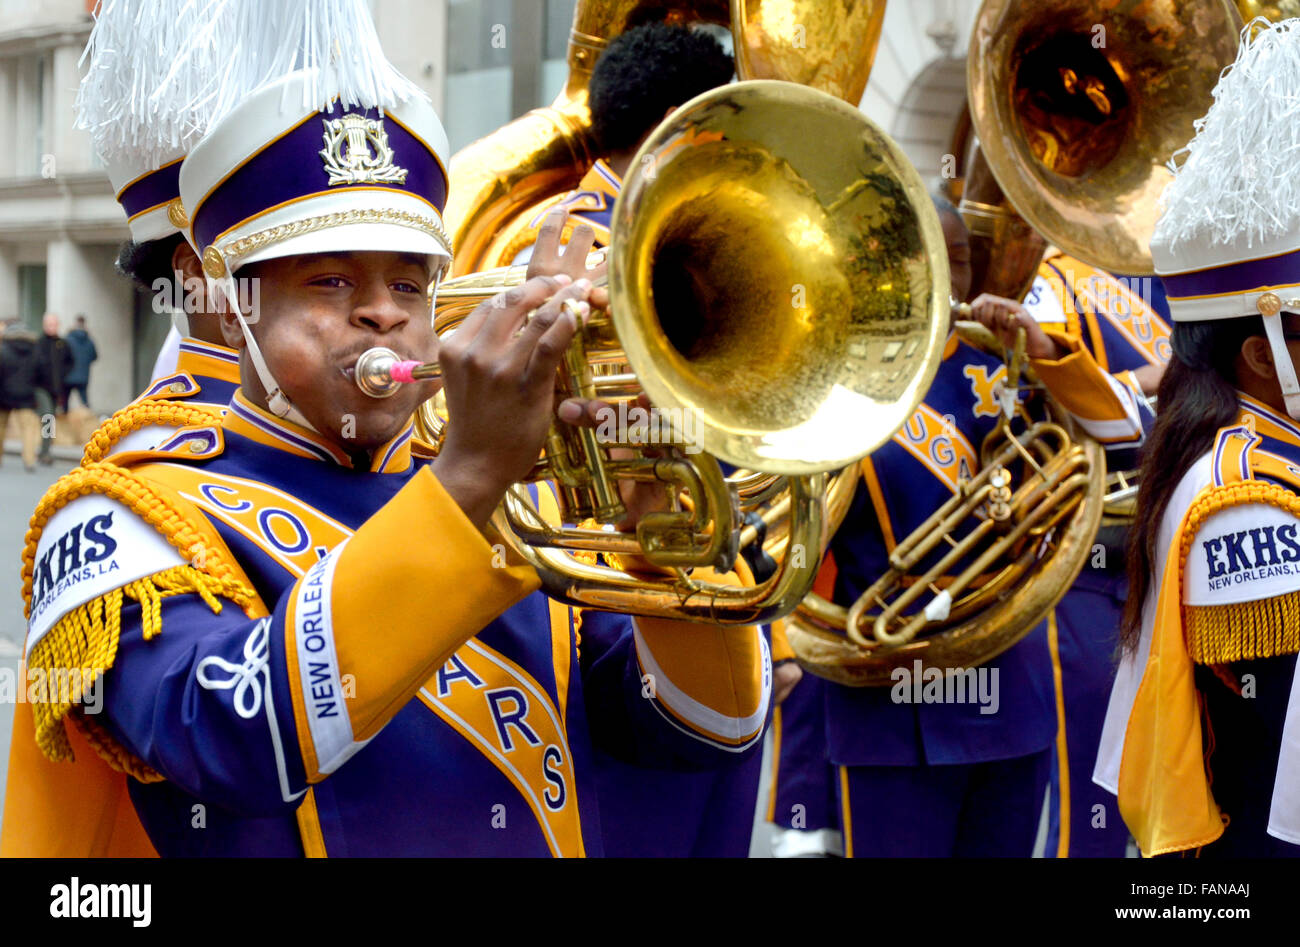 Edna Karr High School Marching Band on the JSU Plaza ... |Edna Karr High School Band